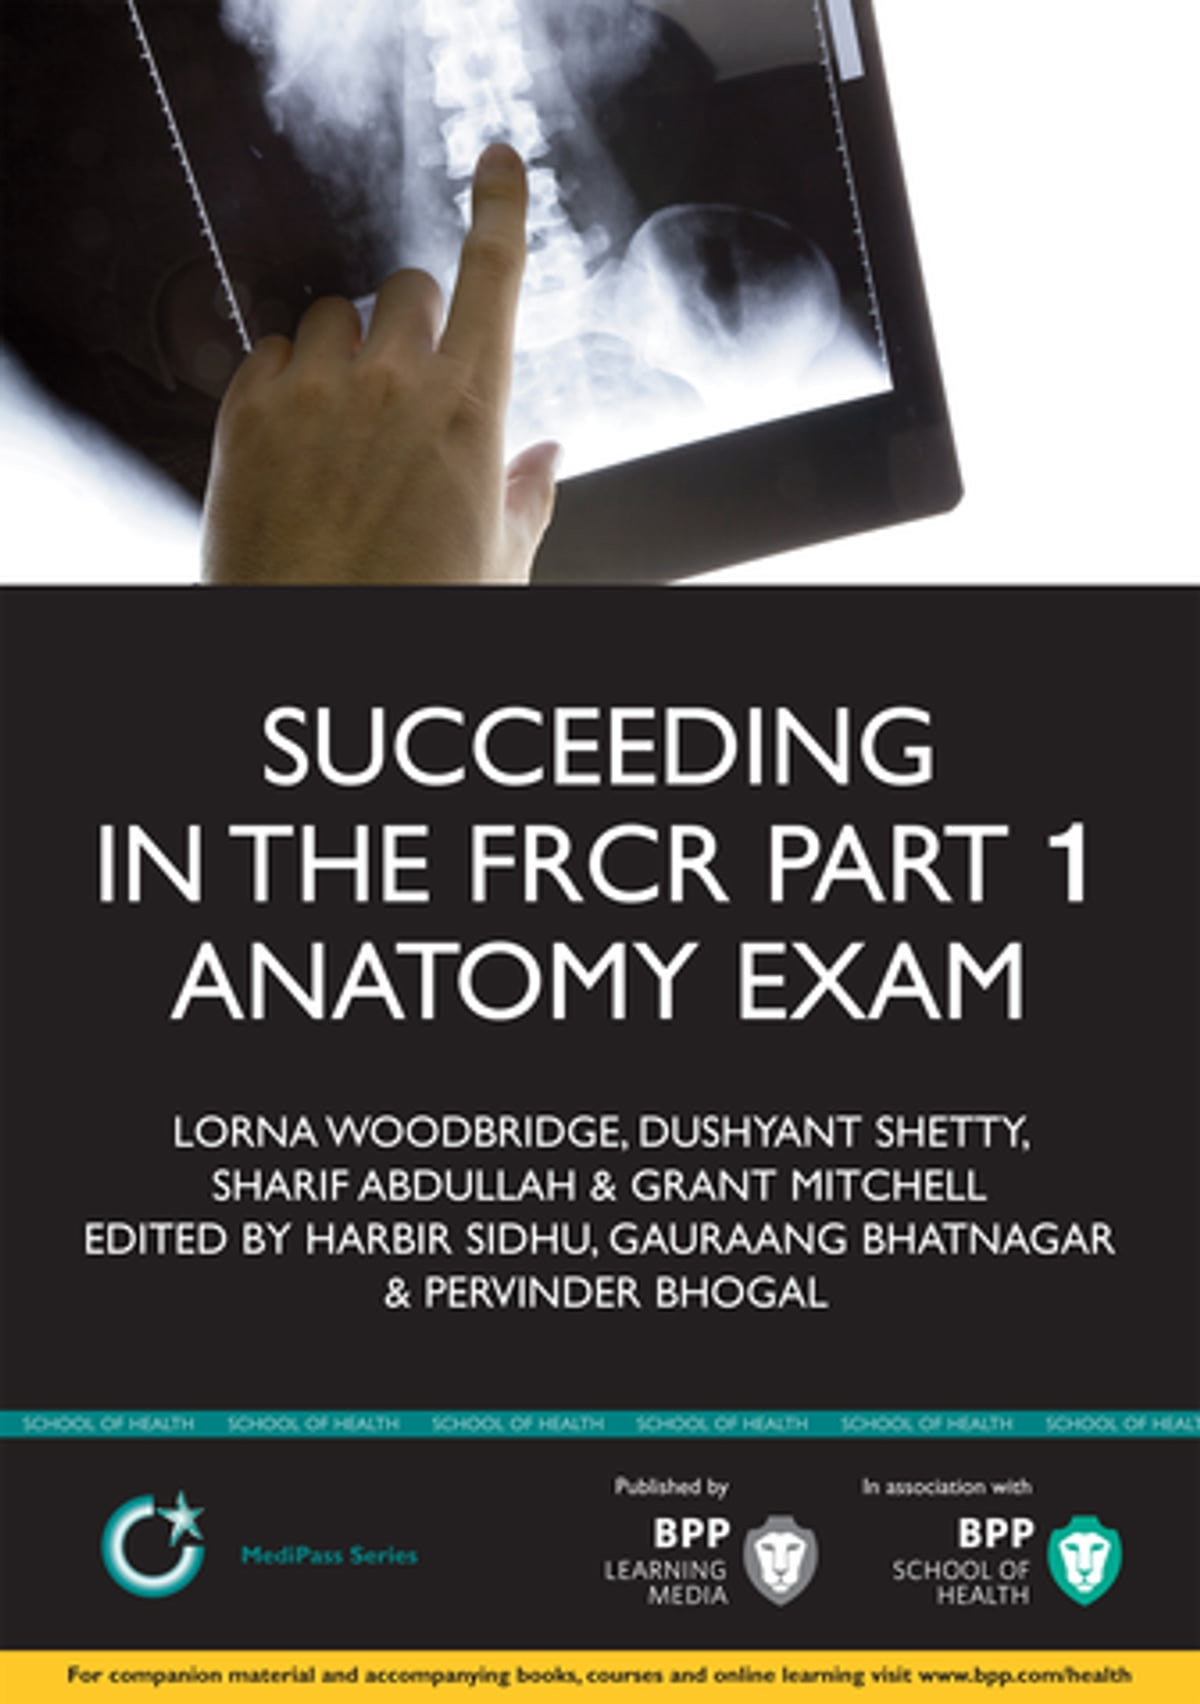 Succeeding In The Frcr Part 1 Anatomy Exam Ebook By Lorna Woodbridge